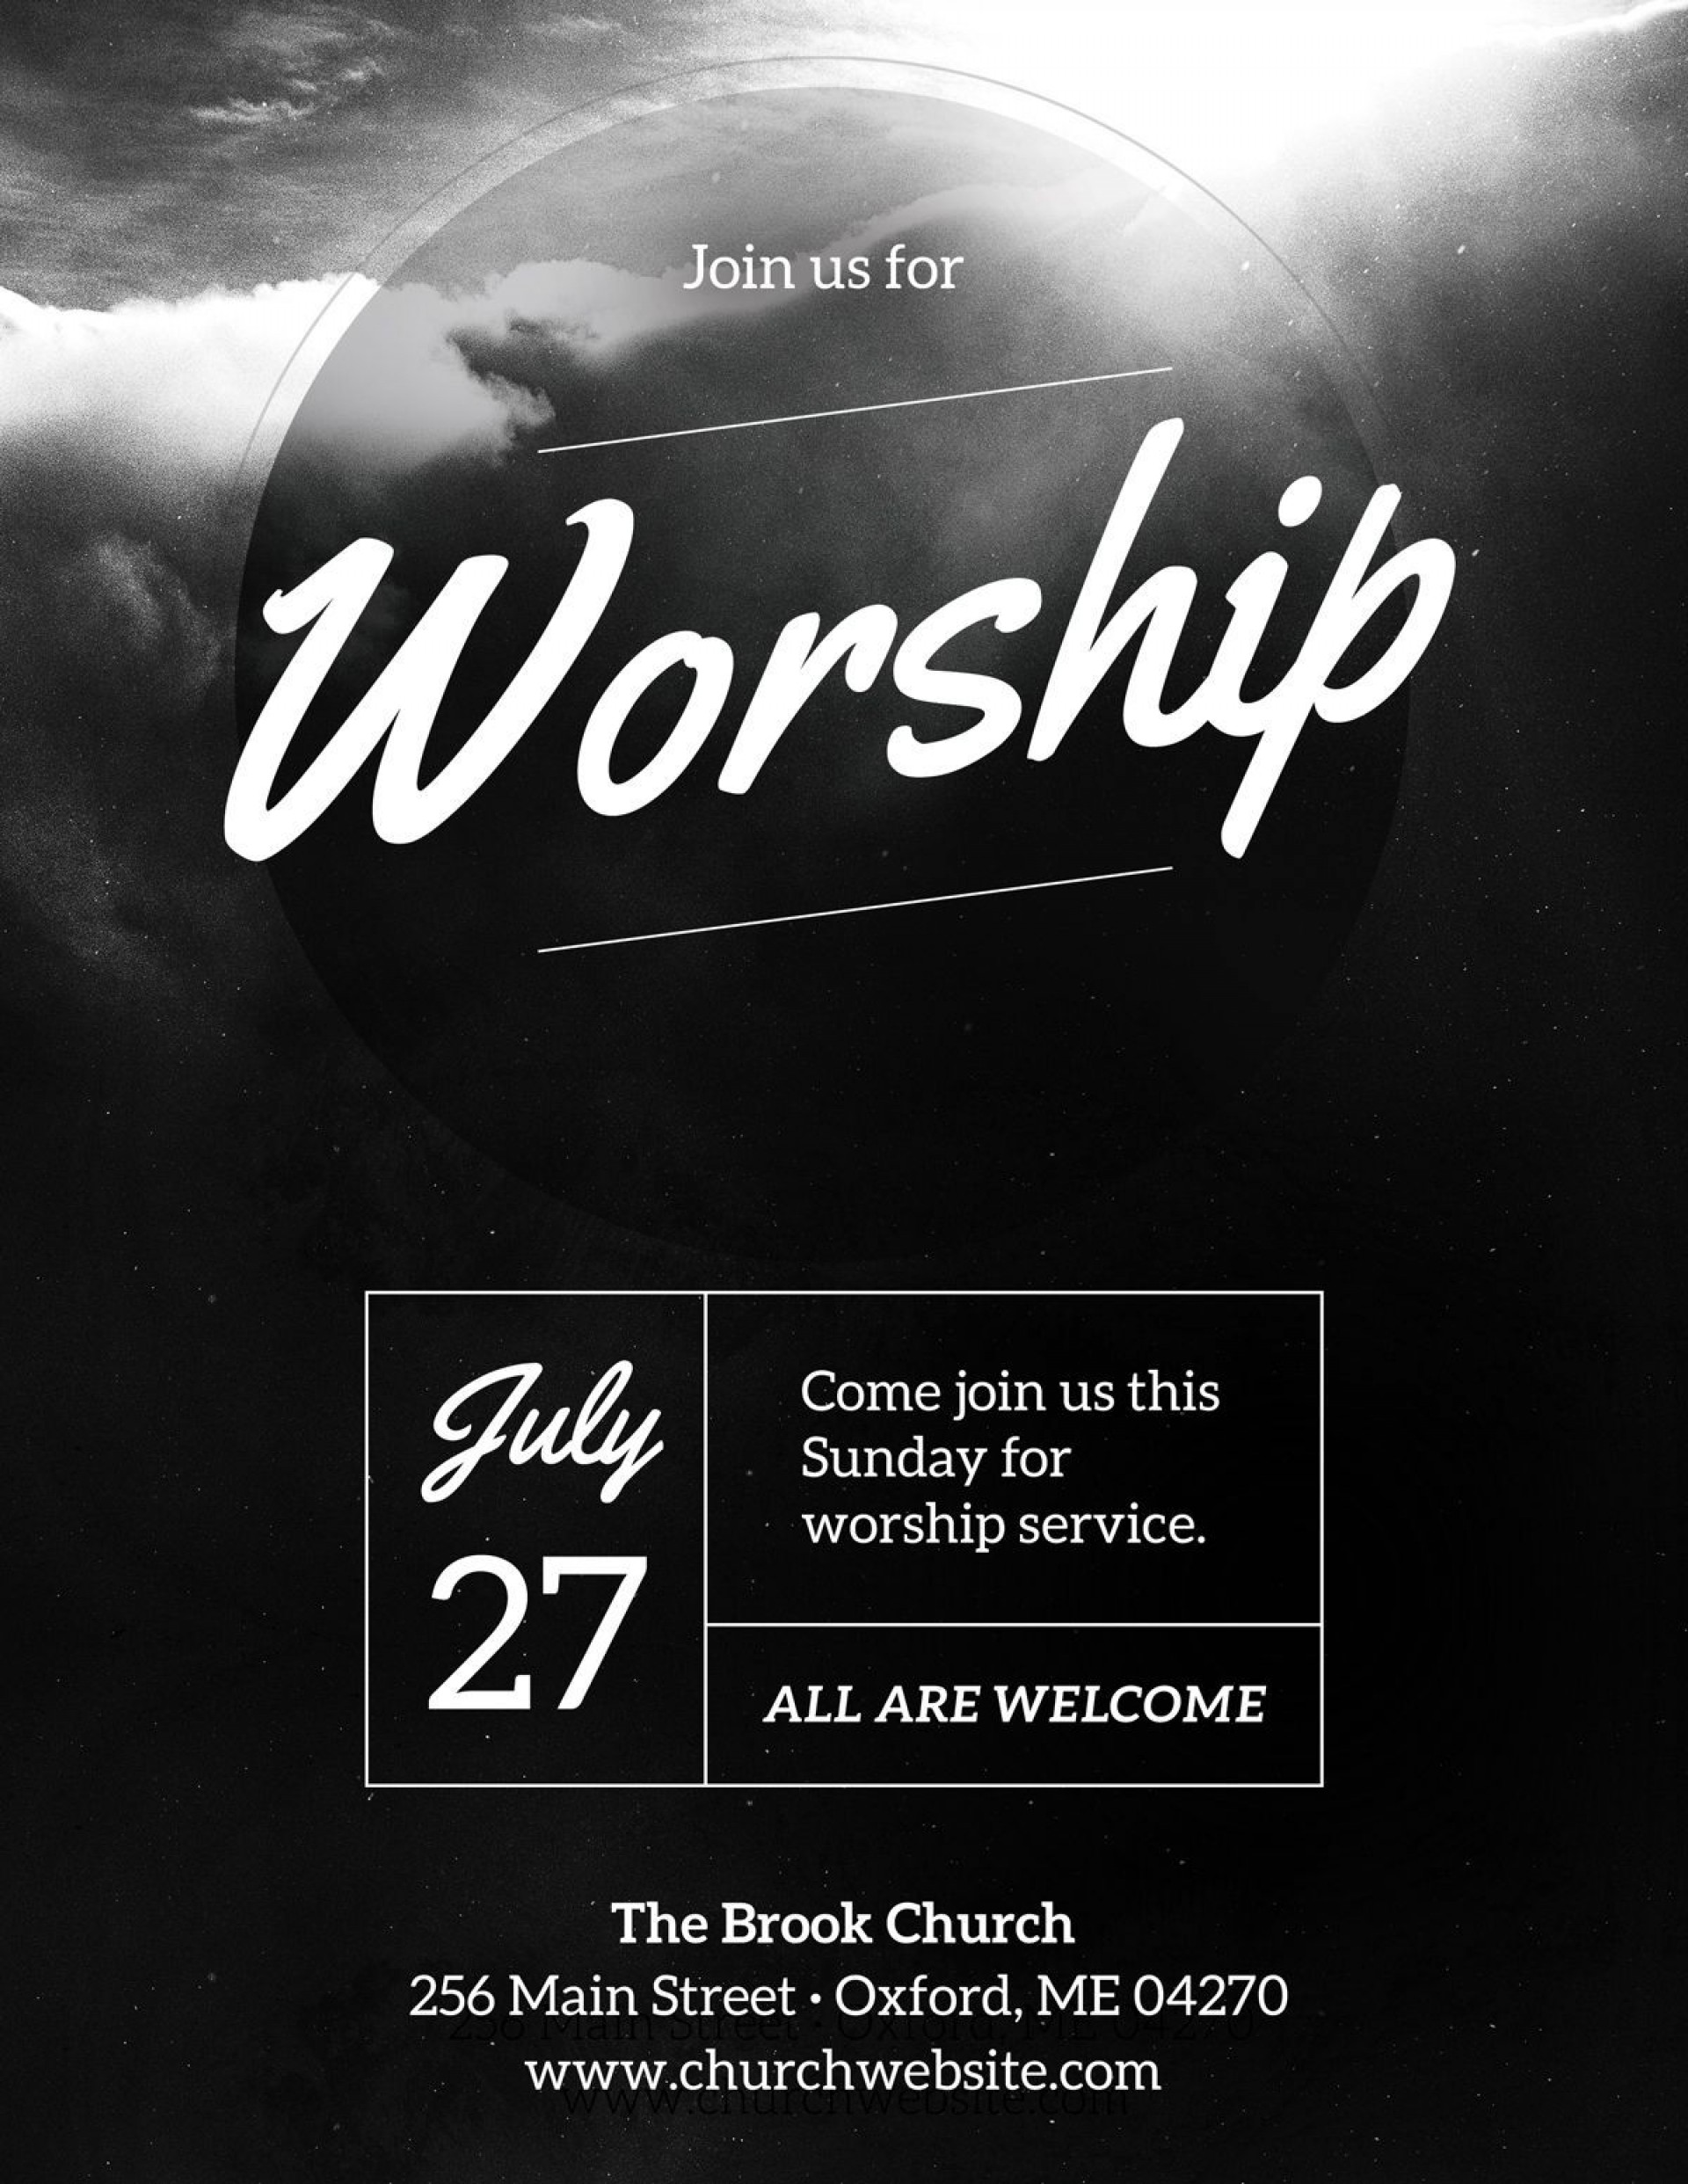 003 Phenomenal Church Flyer Template Free Download Highest Quality  Event Psd1920